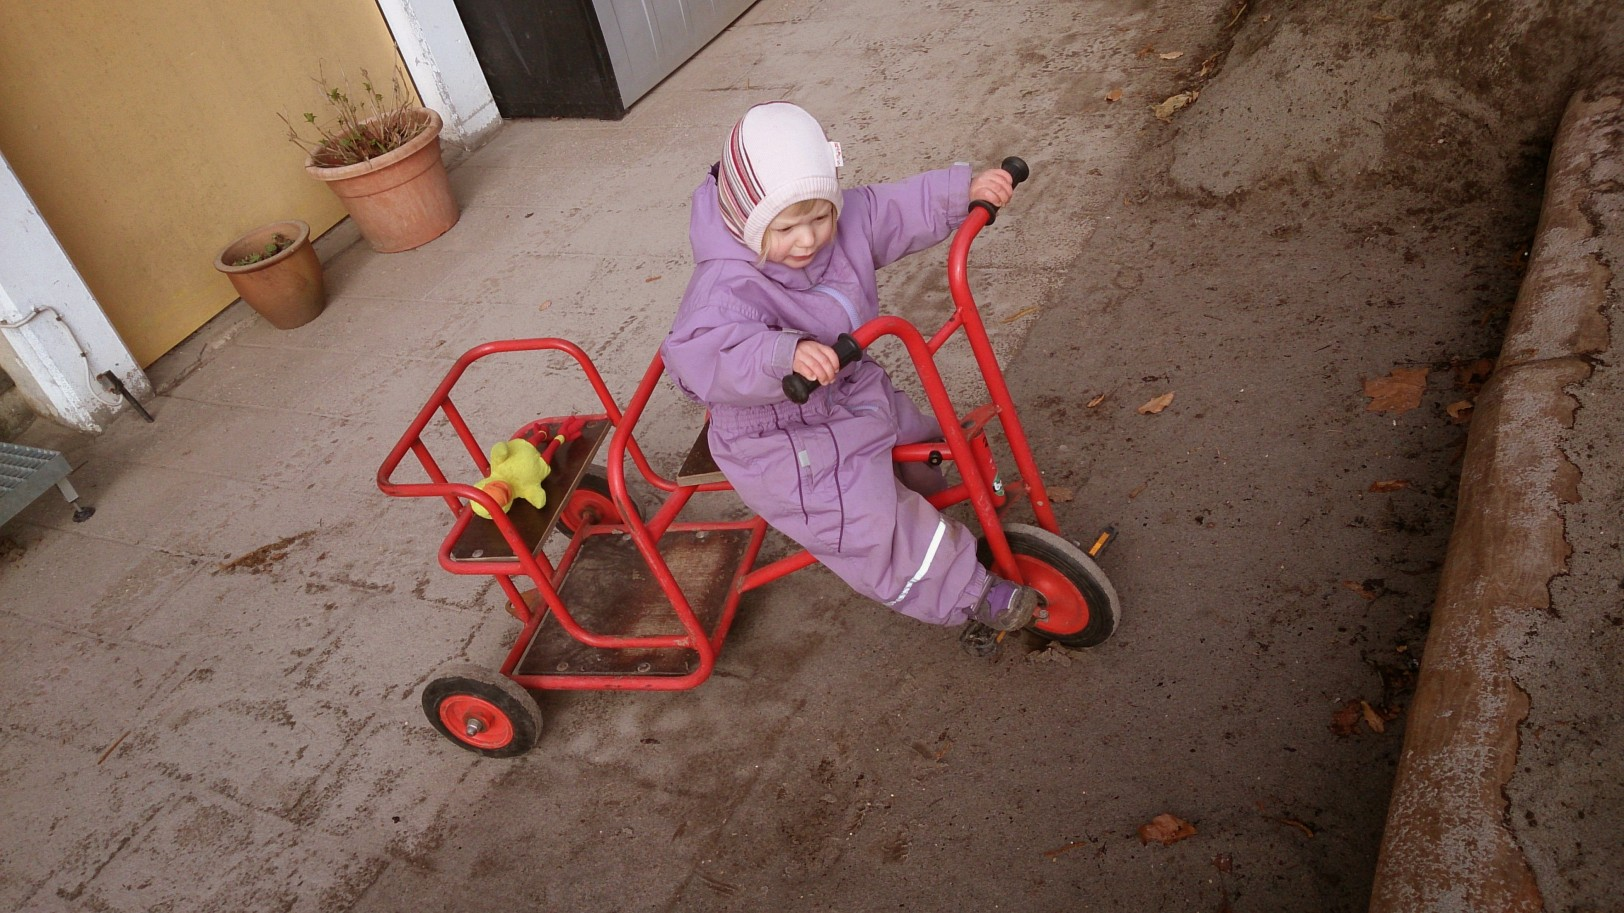 Alva trying to muscle her way around the tandem bike